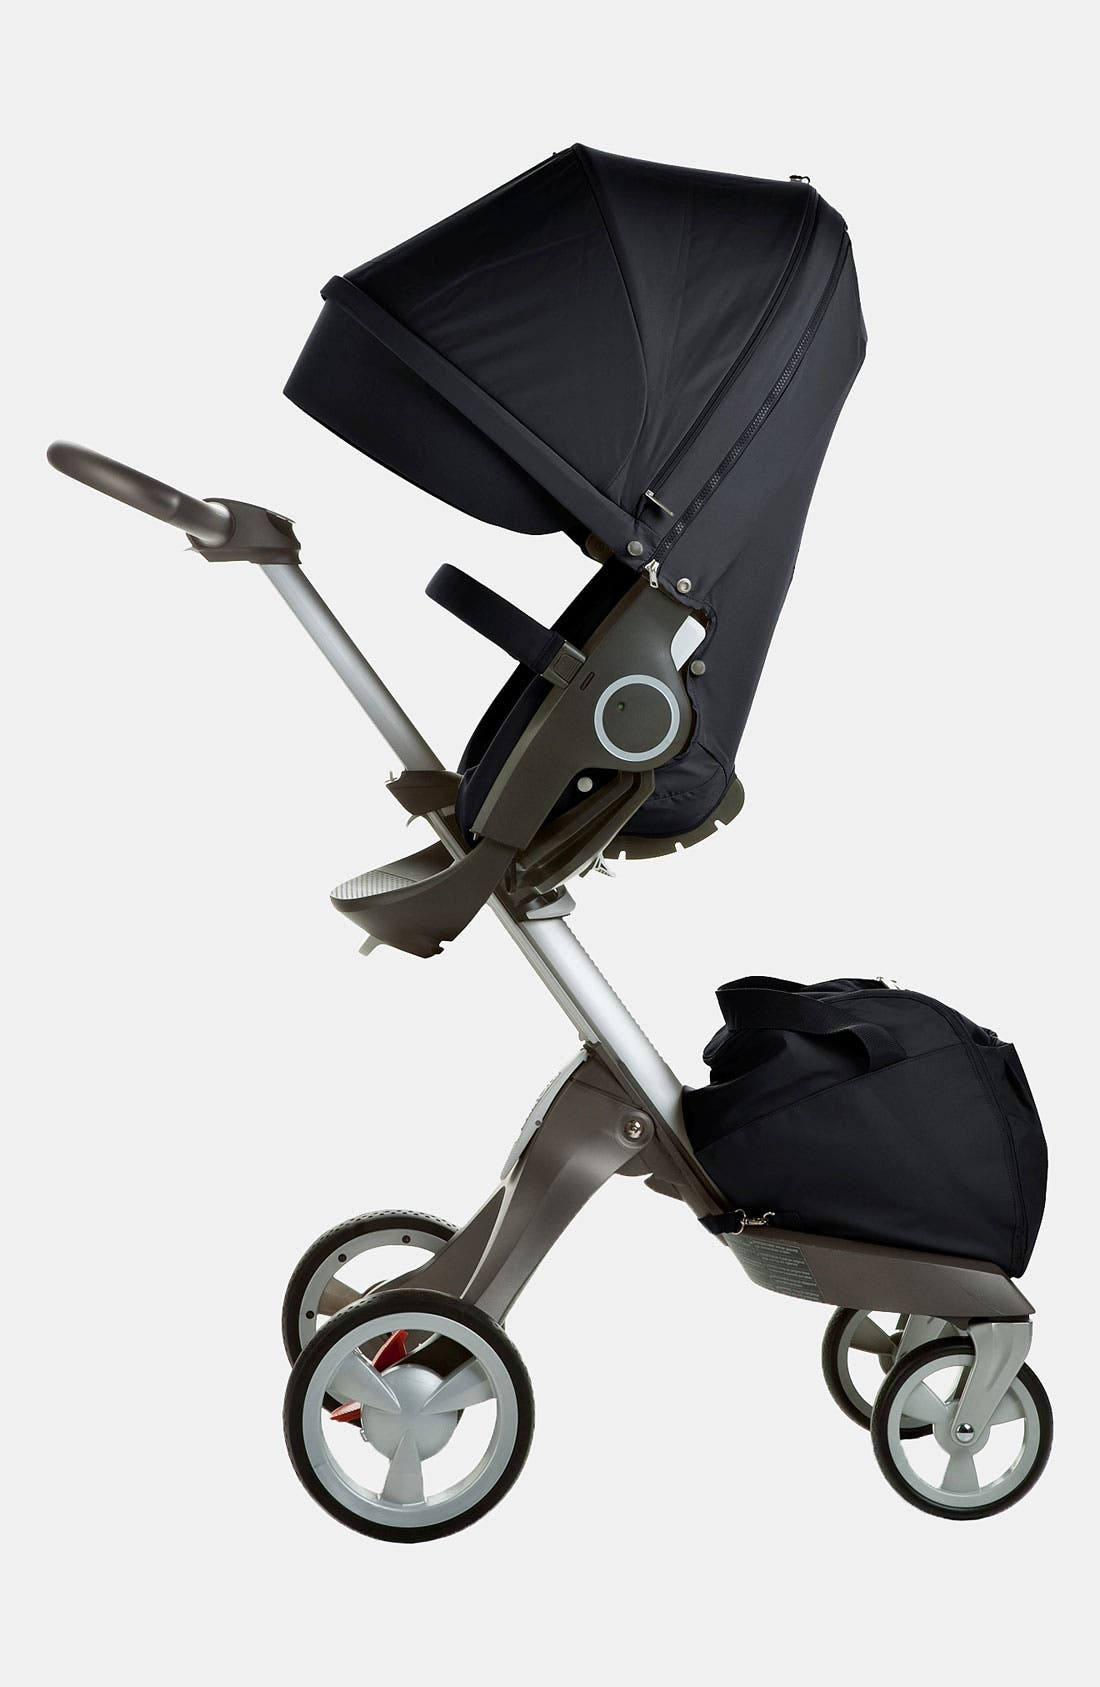 Alternate Image 1 Selected - Stokke 'Xplory®' Stroller